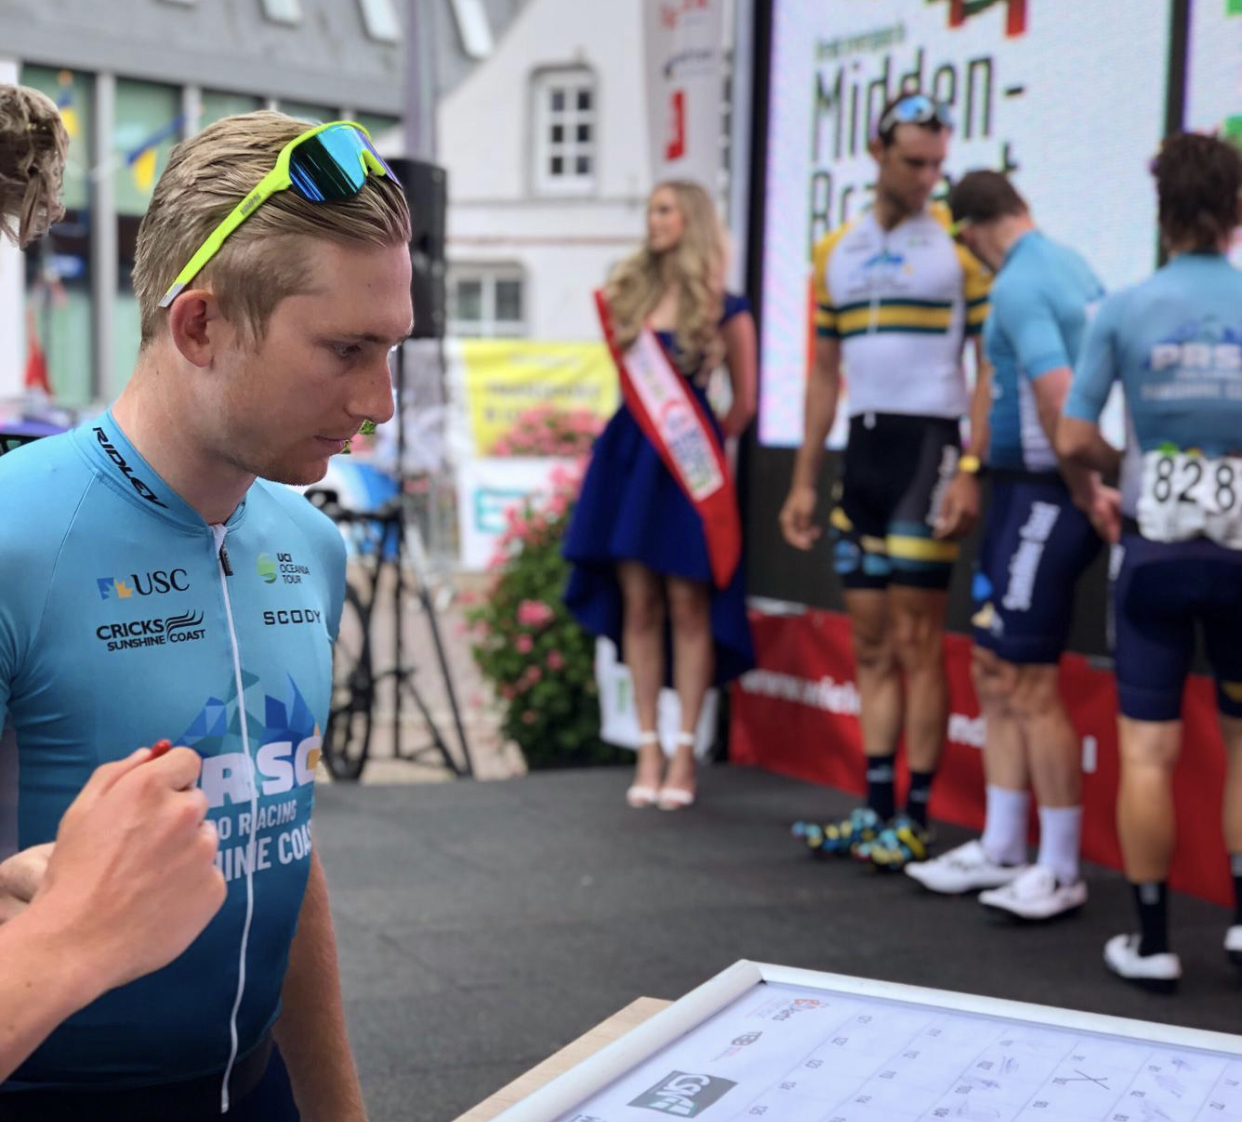 Cameron Scott claims 2nd in Melle Pro Kermesse in Belgium.